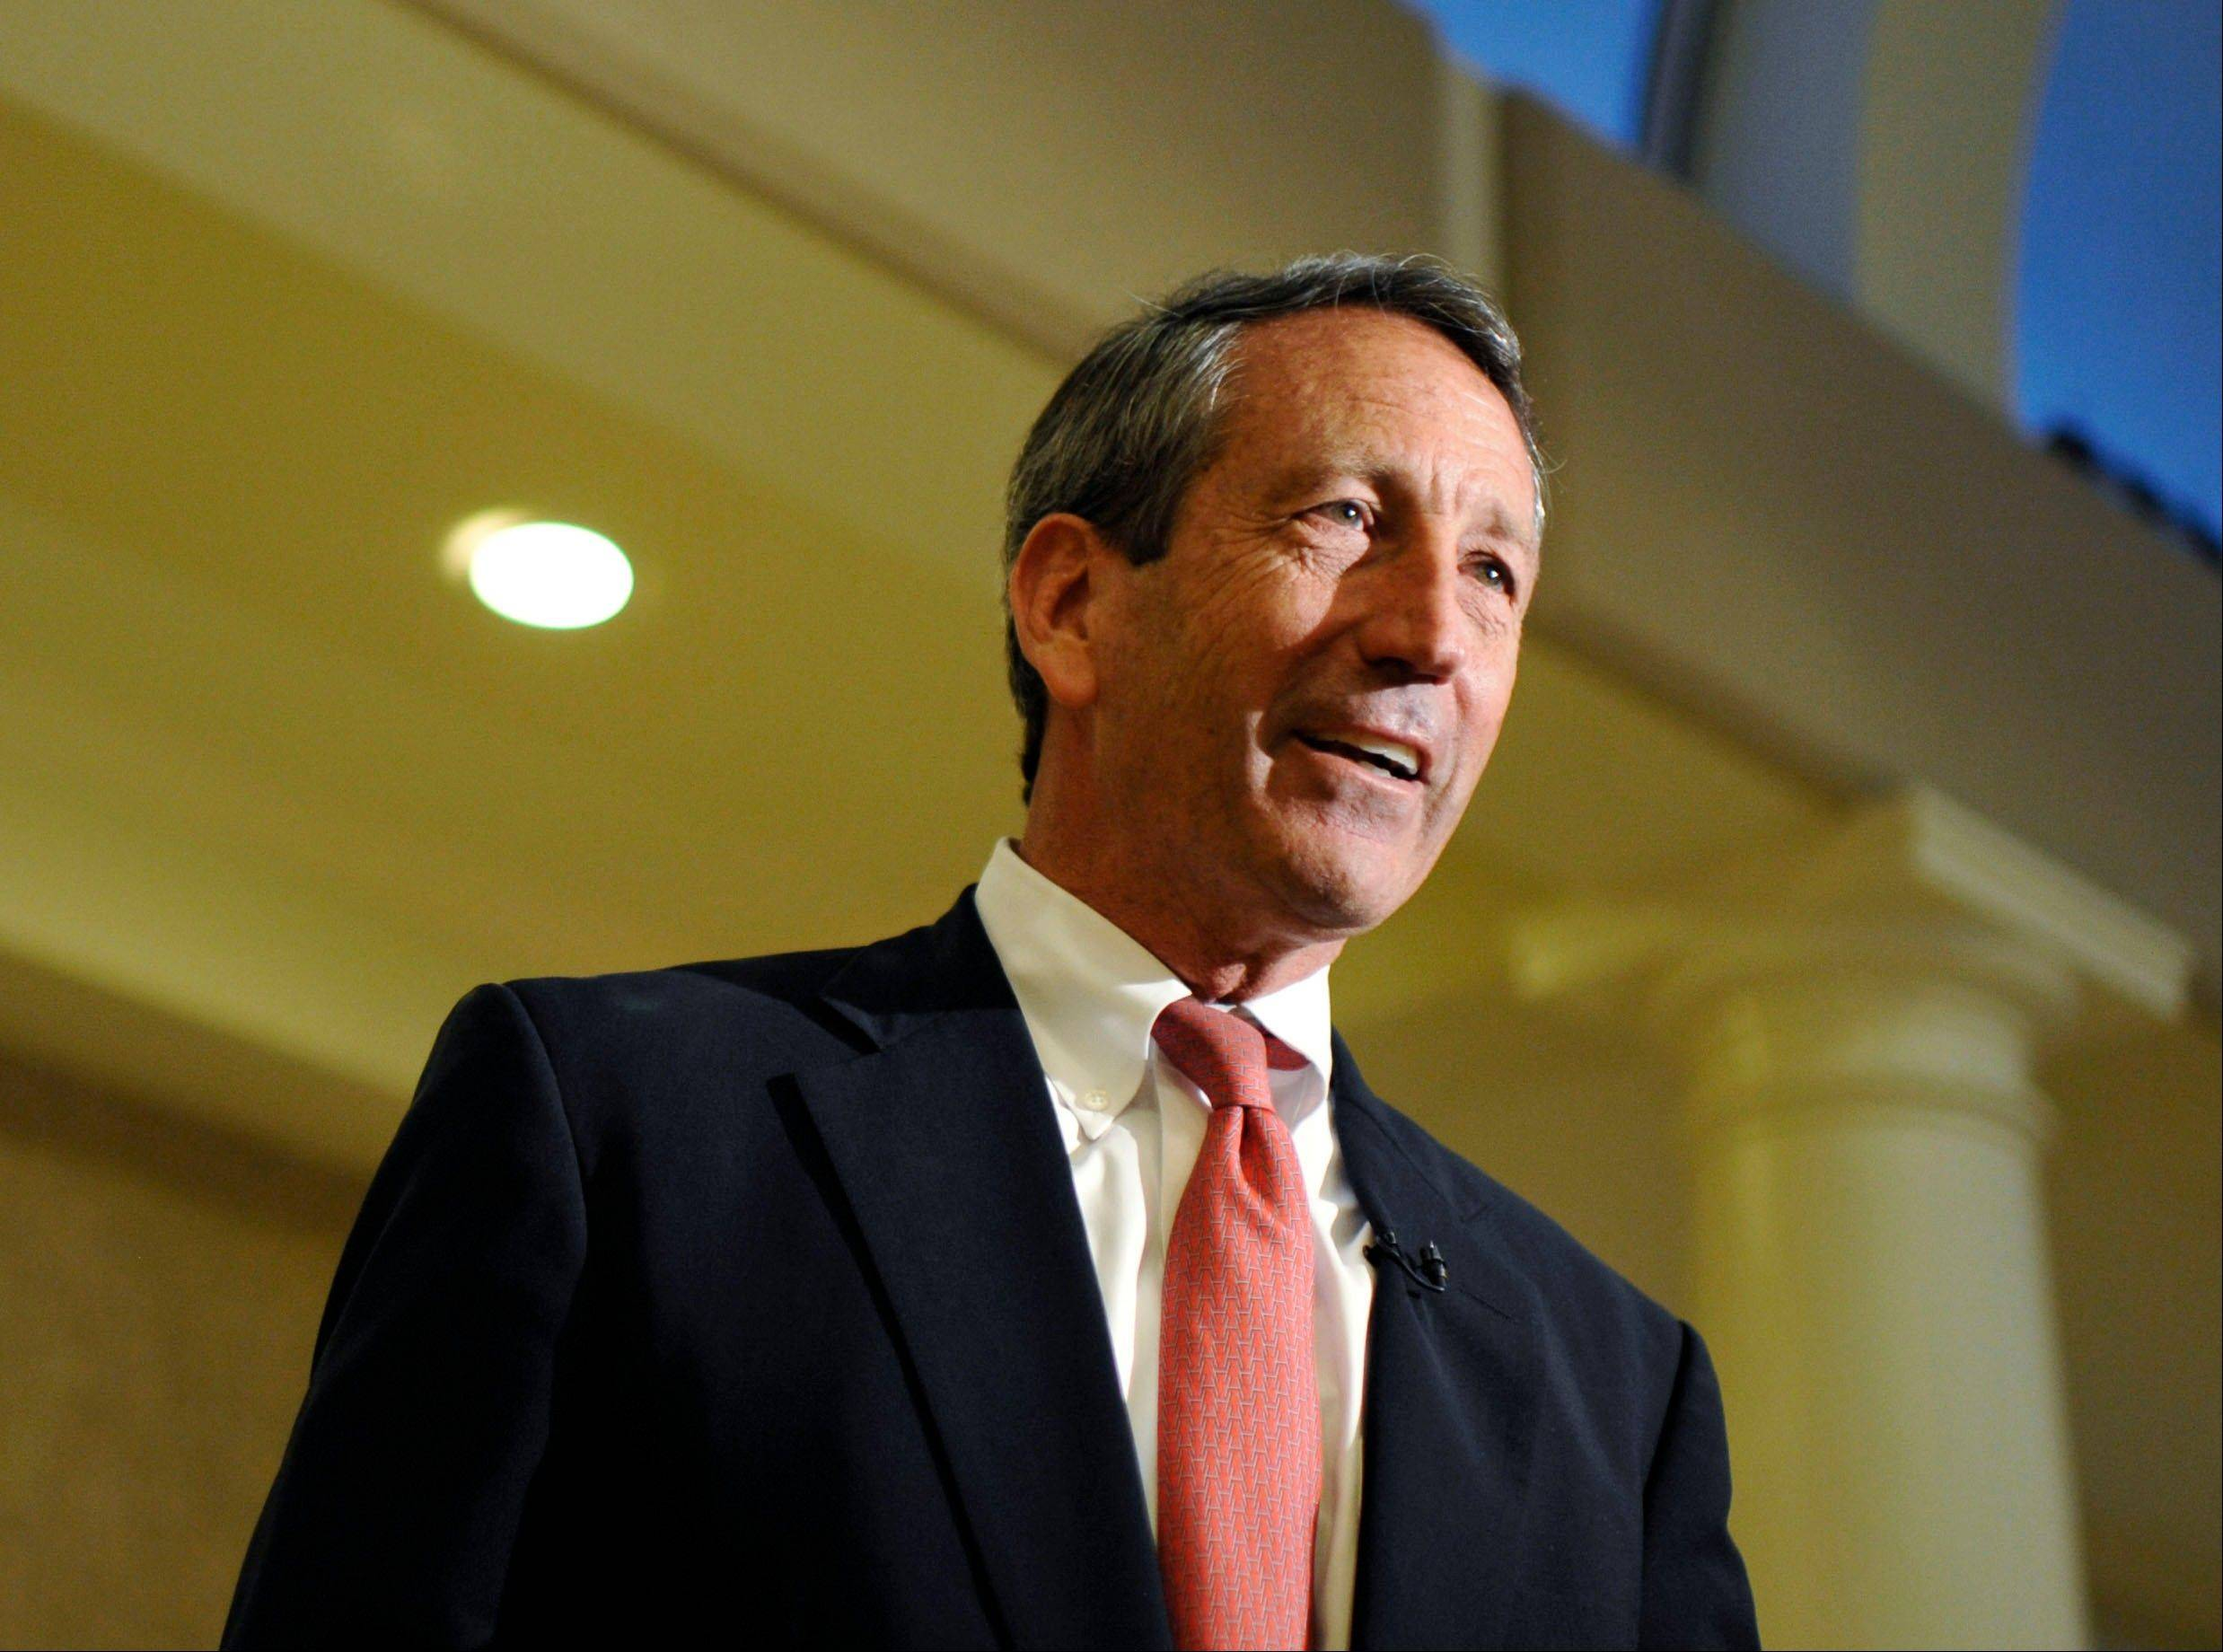 Former South Carolina Gov. Mark Sanford speaks to supporters Tuesday during a campaign stop at the Historic Rotary Club of Charleston at the Citadel in Charleston, S.C.